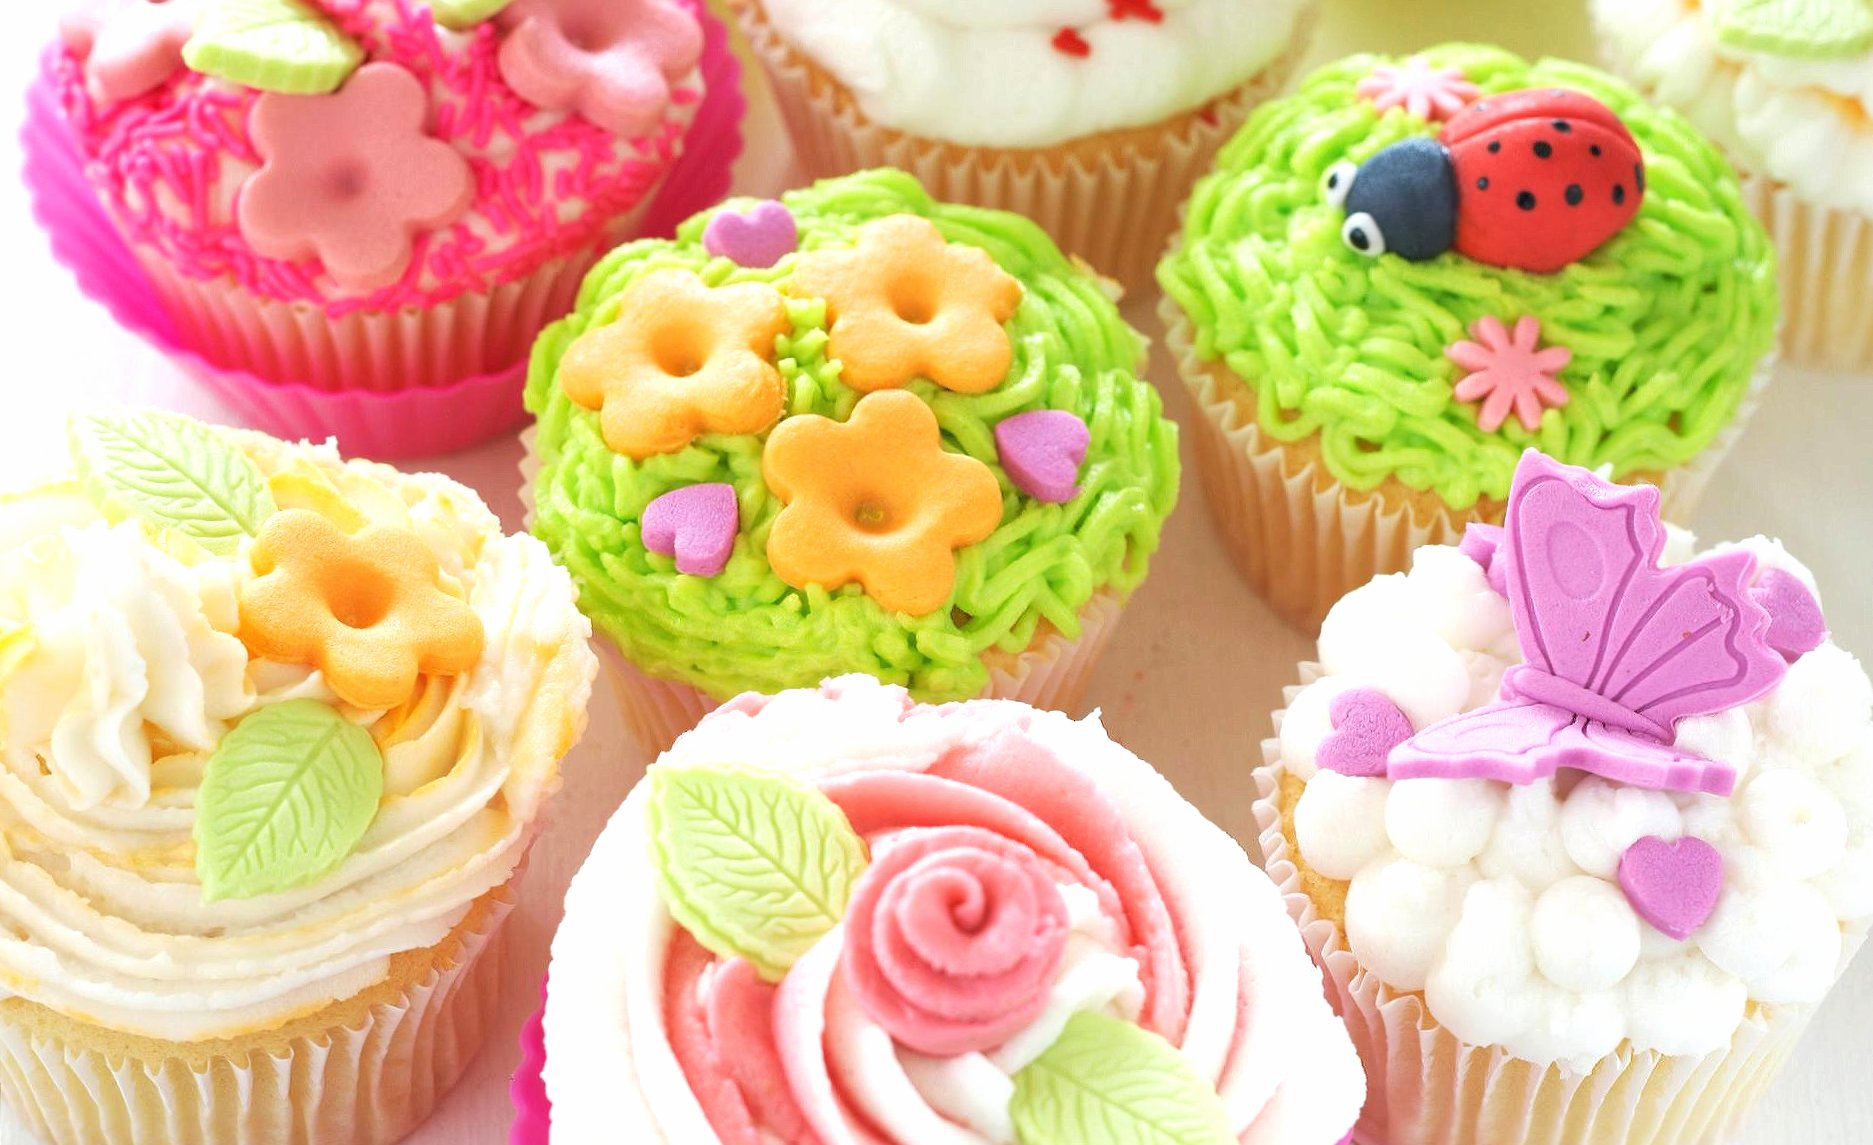 Cupcakes wallpapers HD quality